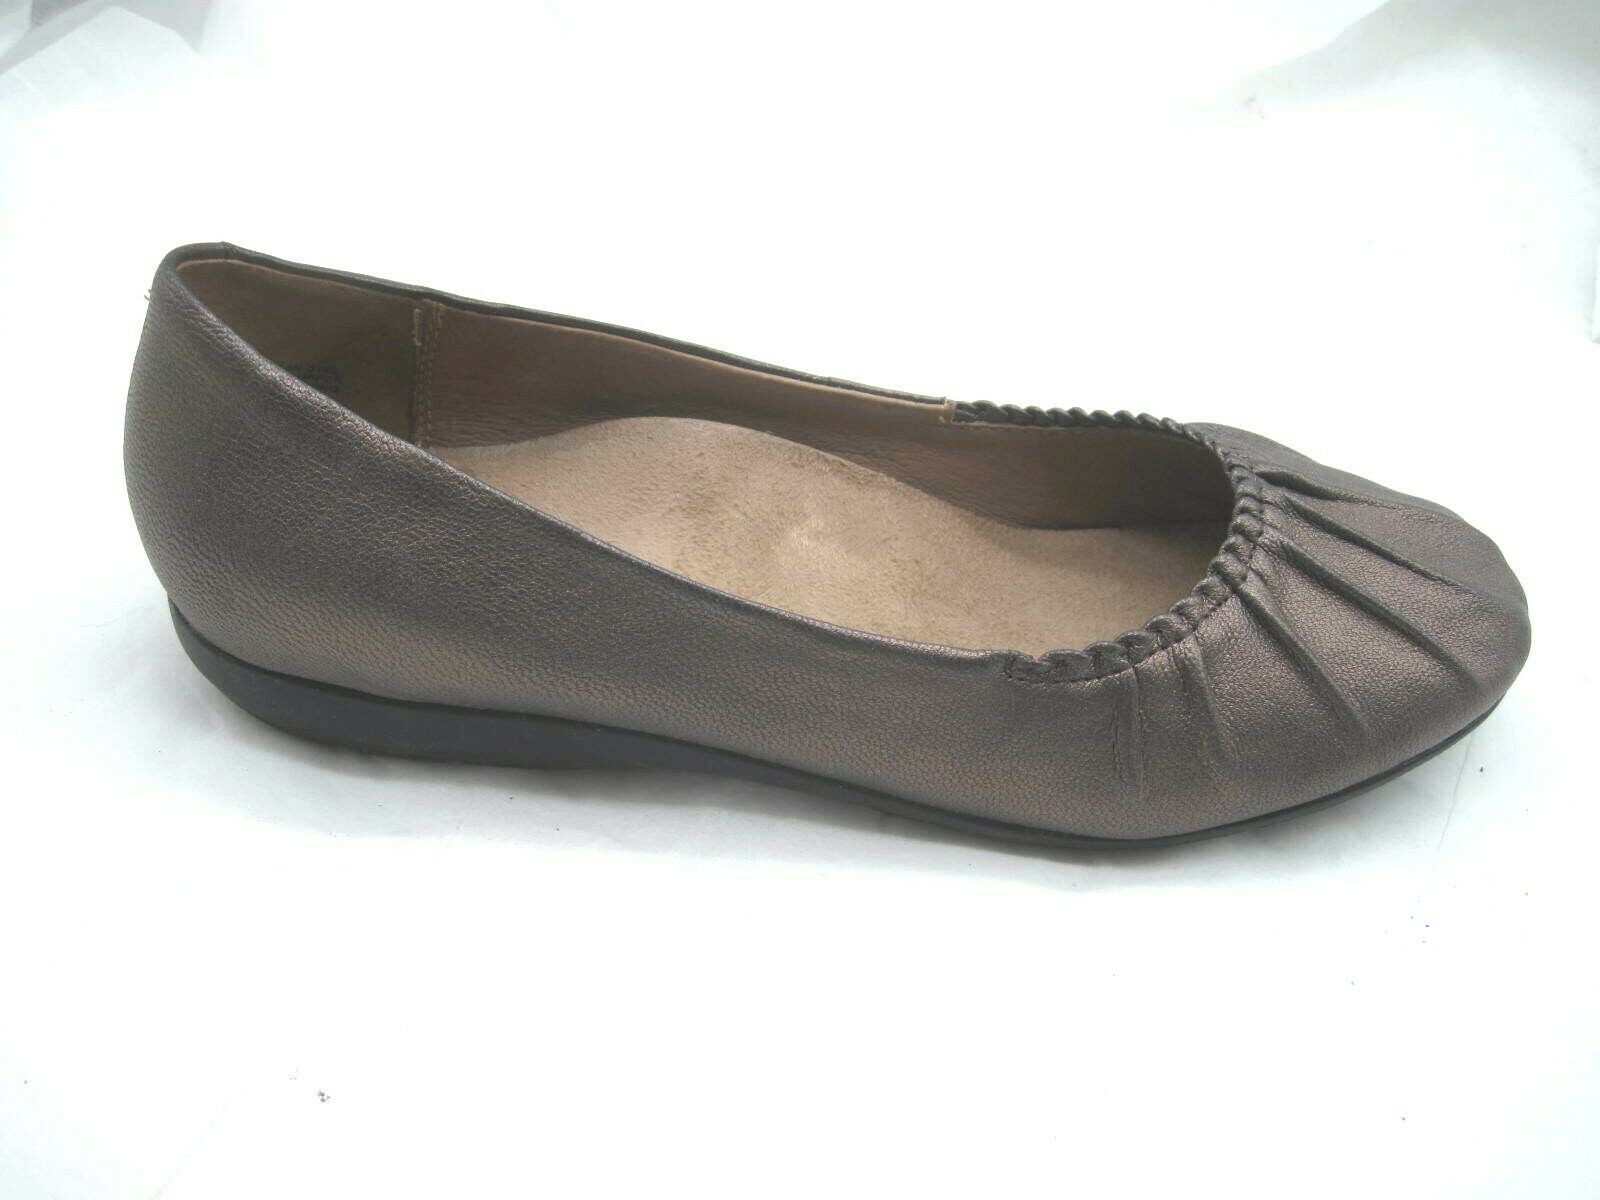 Abeo Taylin 9N Narrow brown pleated ballet ballerina flats womens ladies shoes